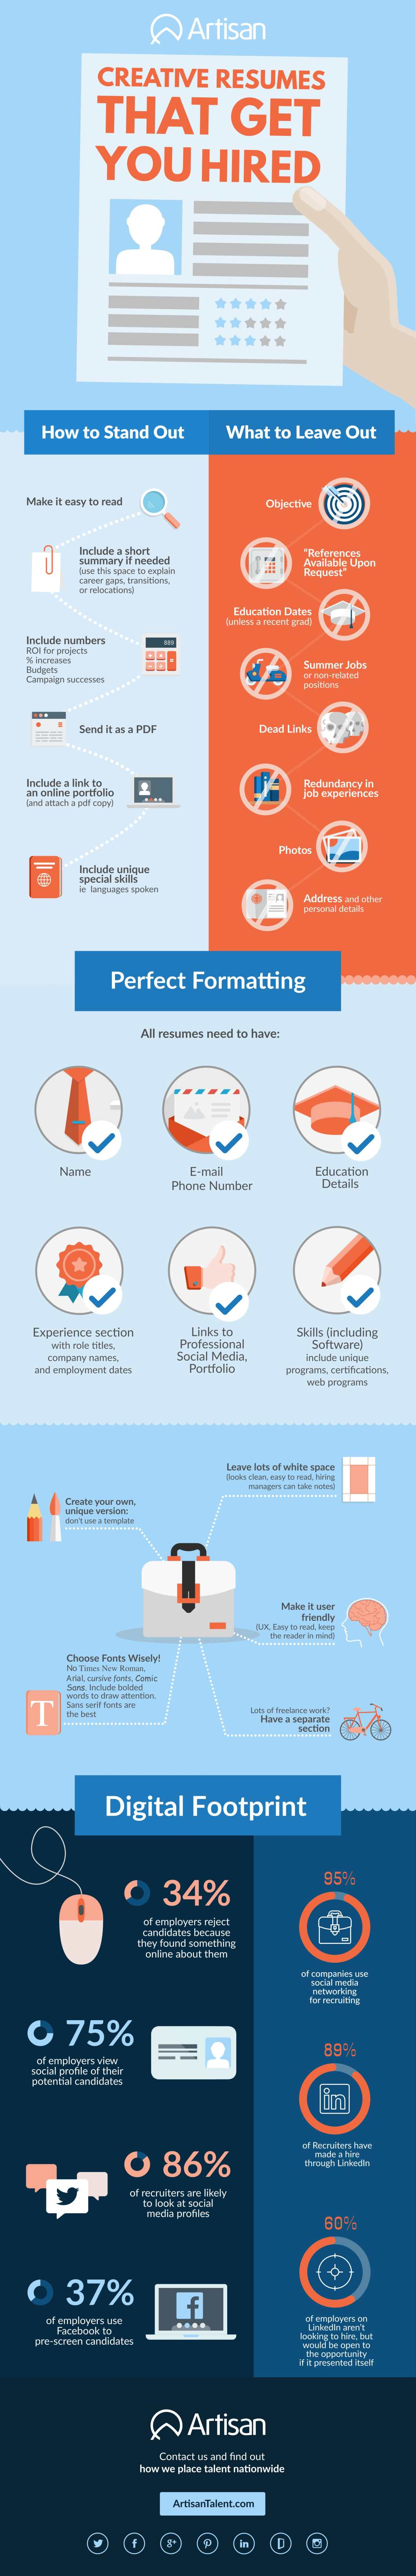 How to Write Resumes that Recruiters Love - Infographic